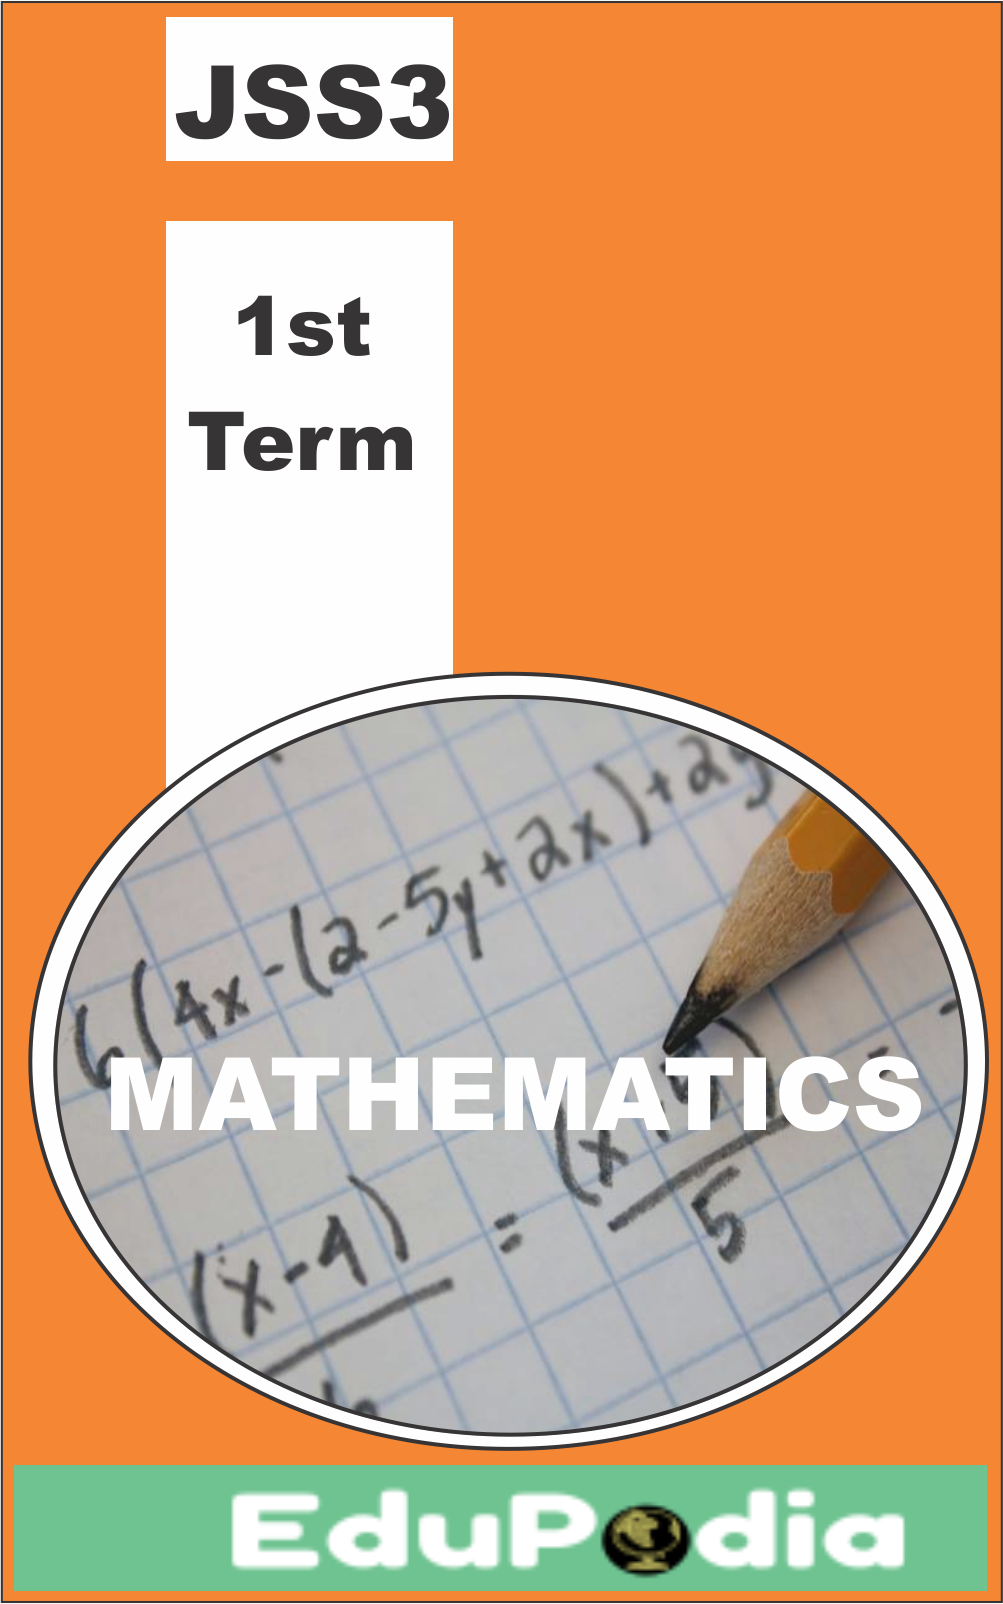 First Term JSS3 Mathematics Lesson Note